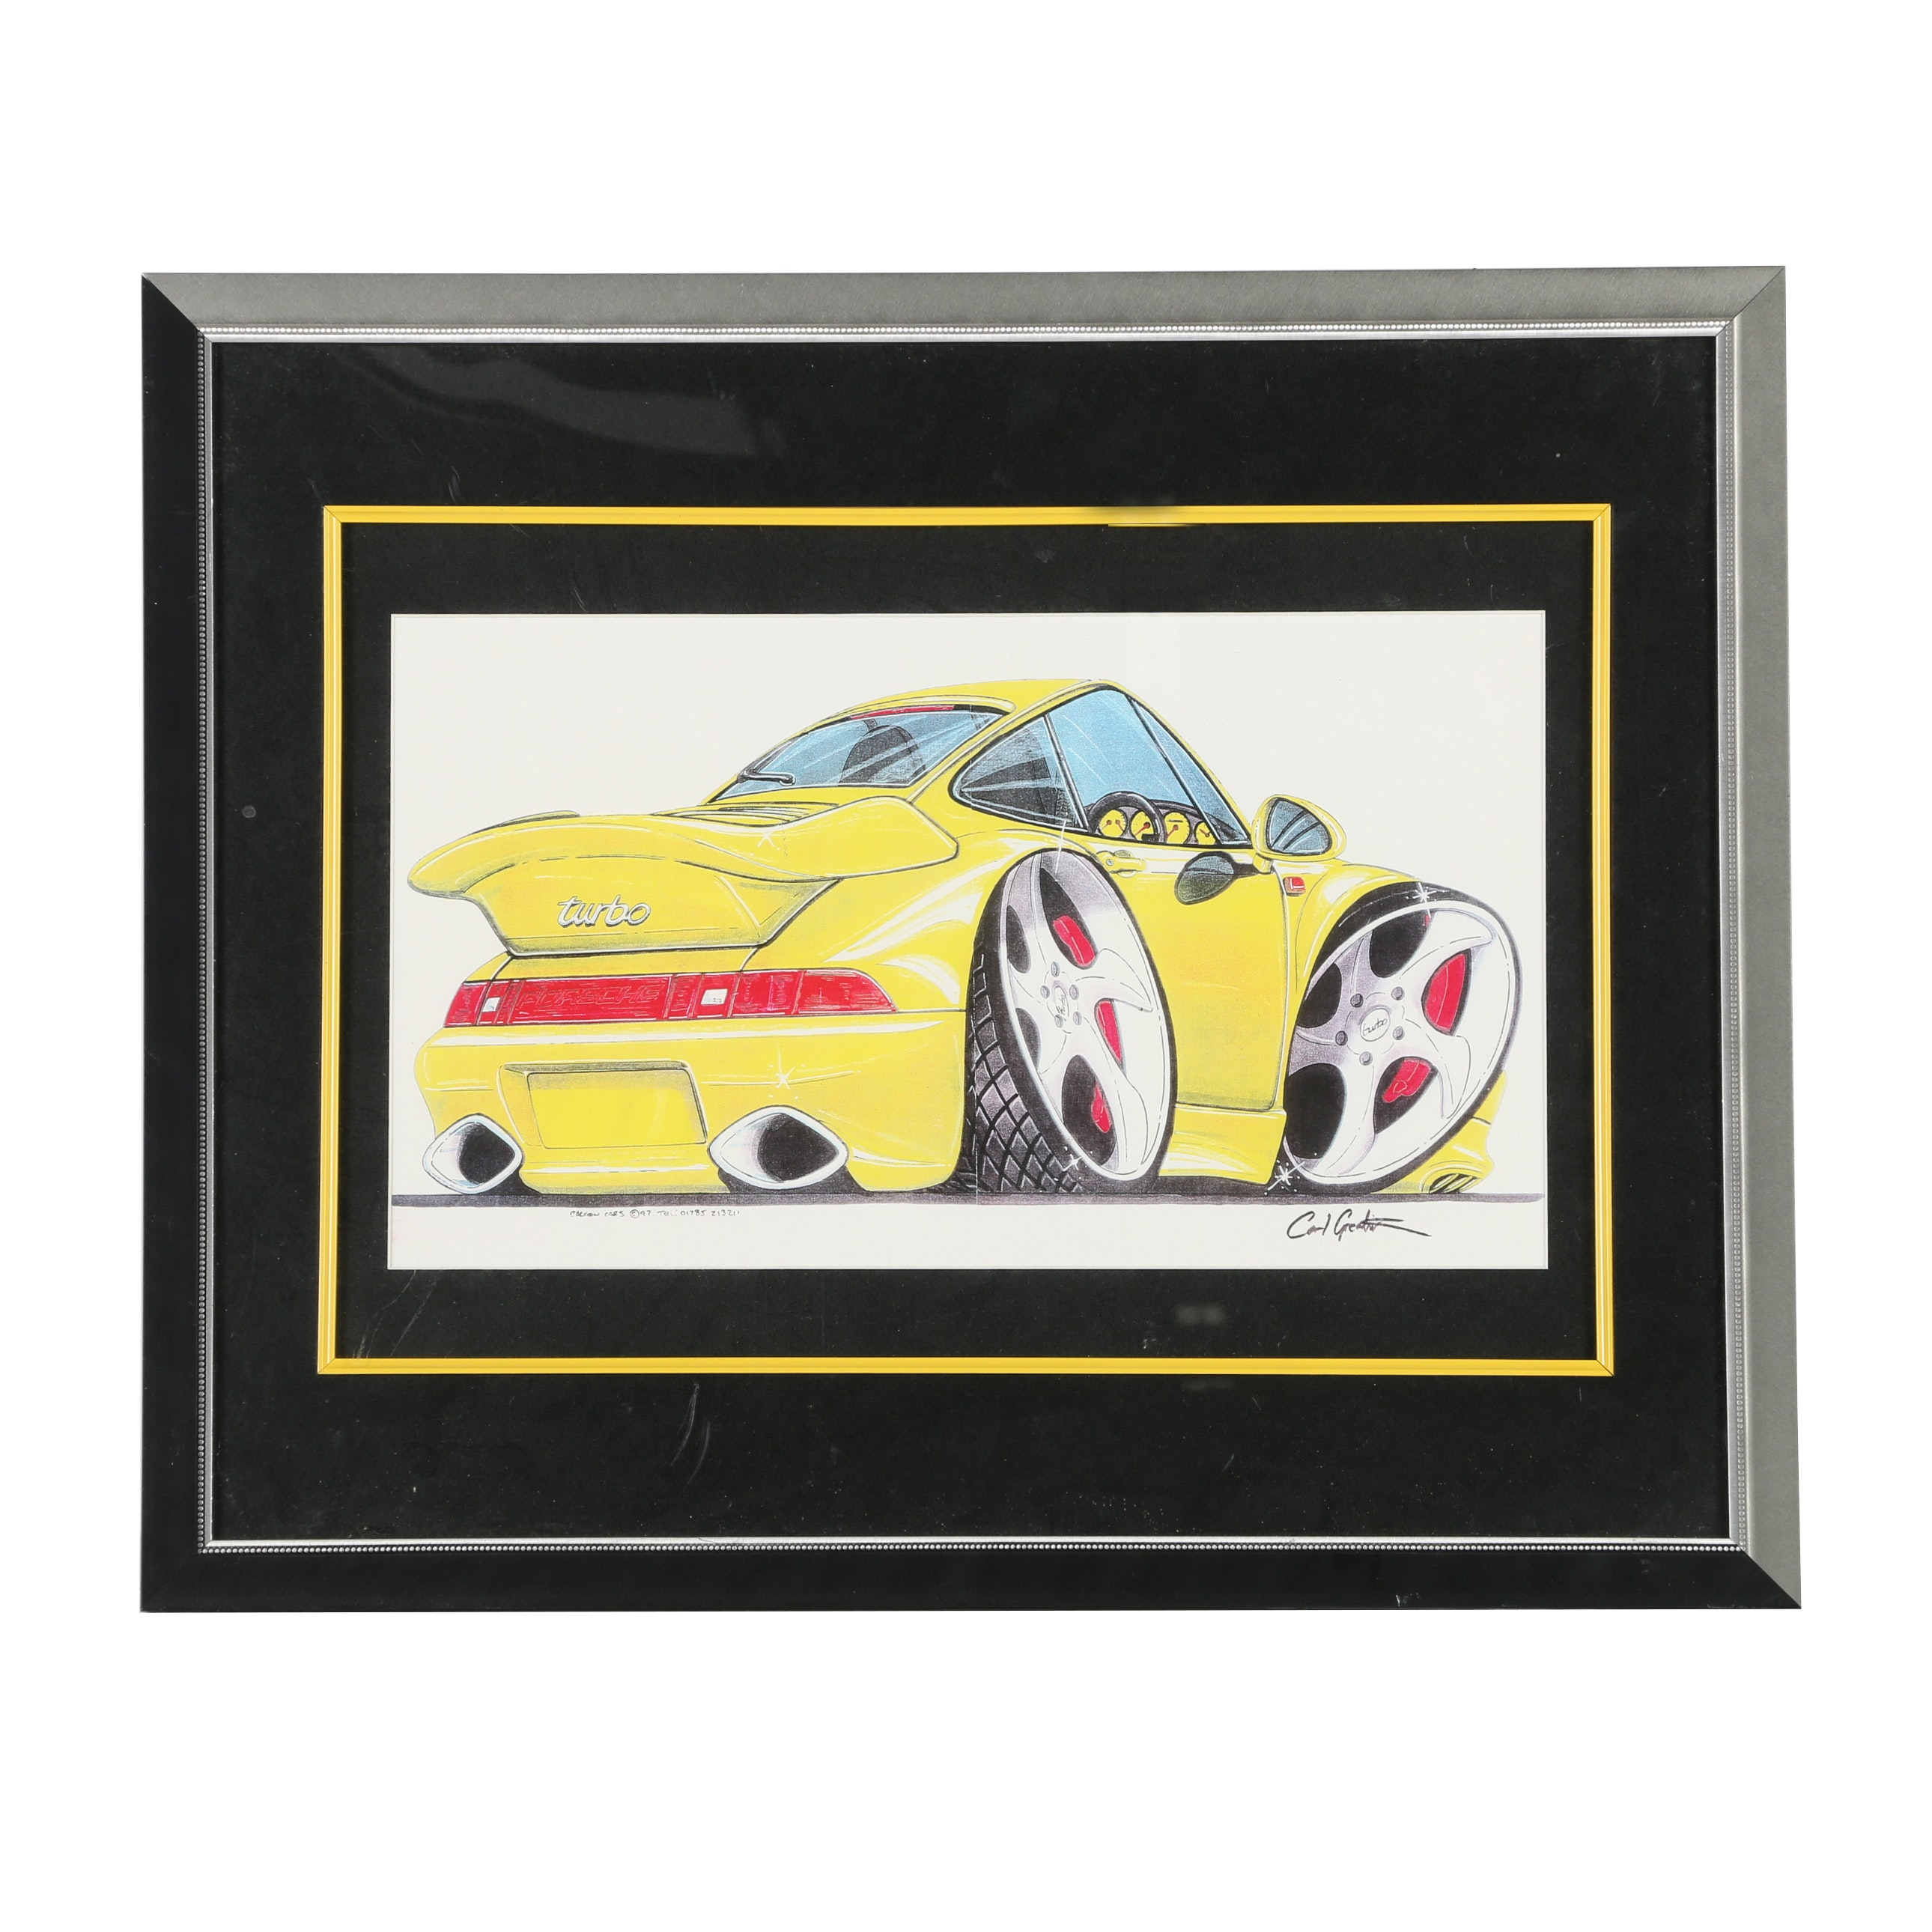 "Giclee Print After Carl Greatrix From ""Cartoon Cars"" Series"